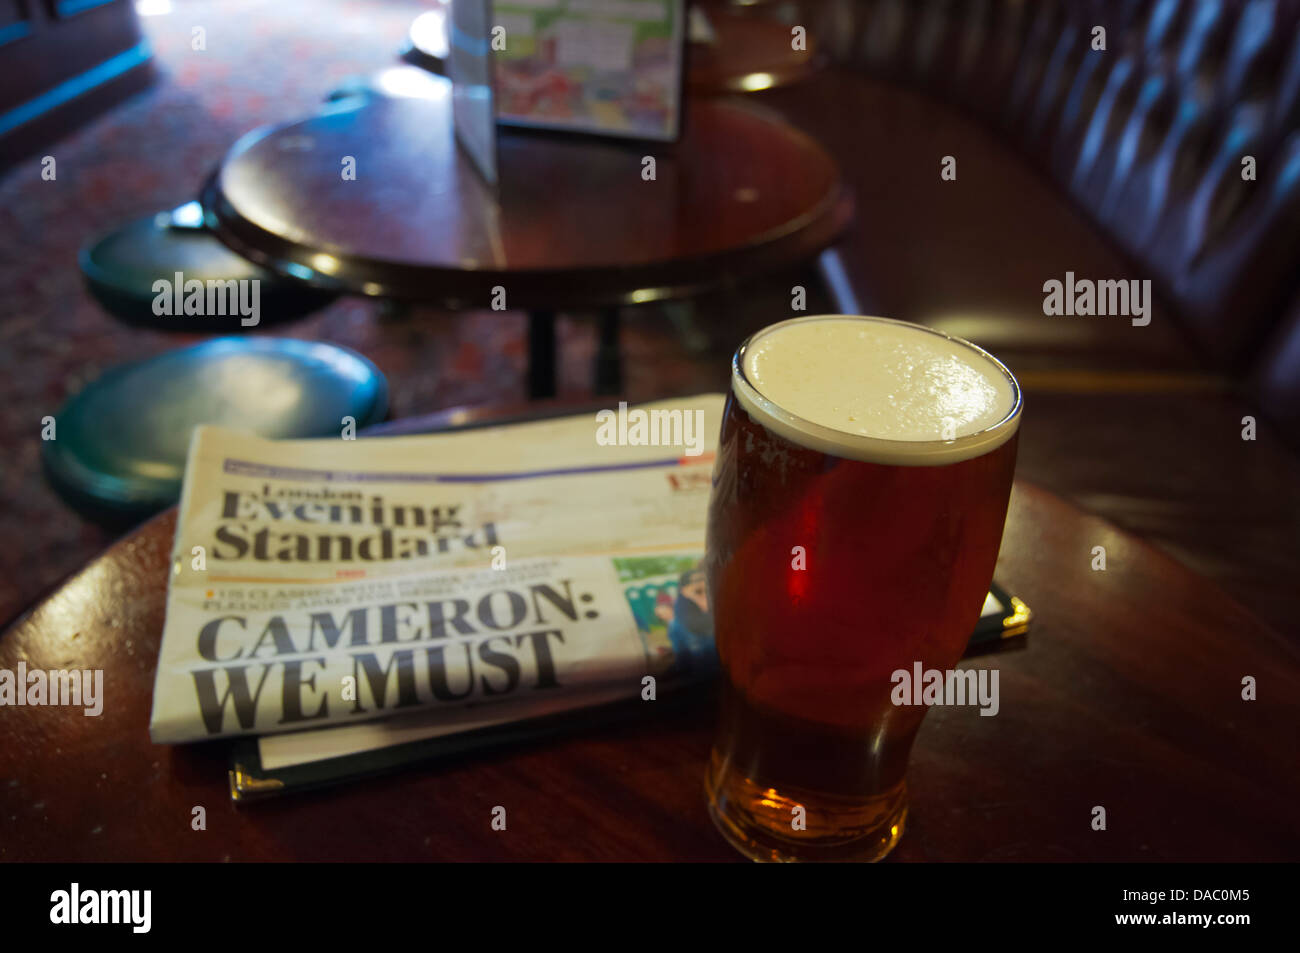 the Evening Standard newspaper and a pint of beer Fitzroy tavern pub London England Britain UK Europe - Stock Image